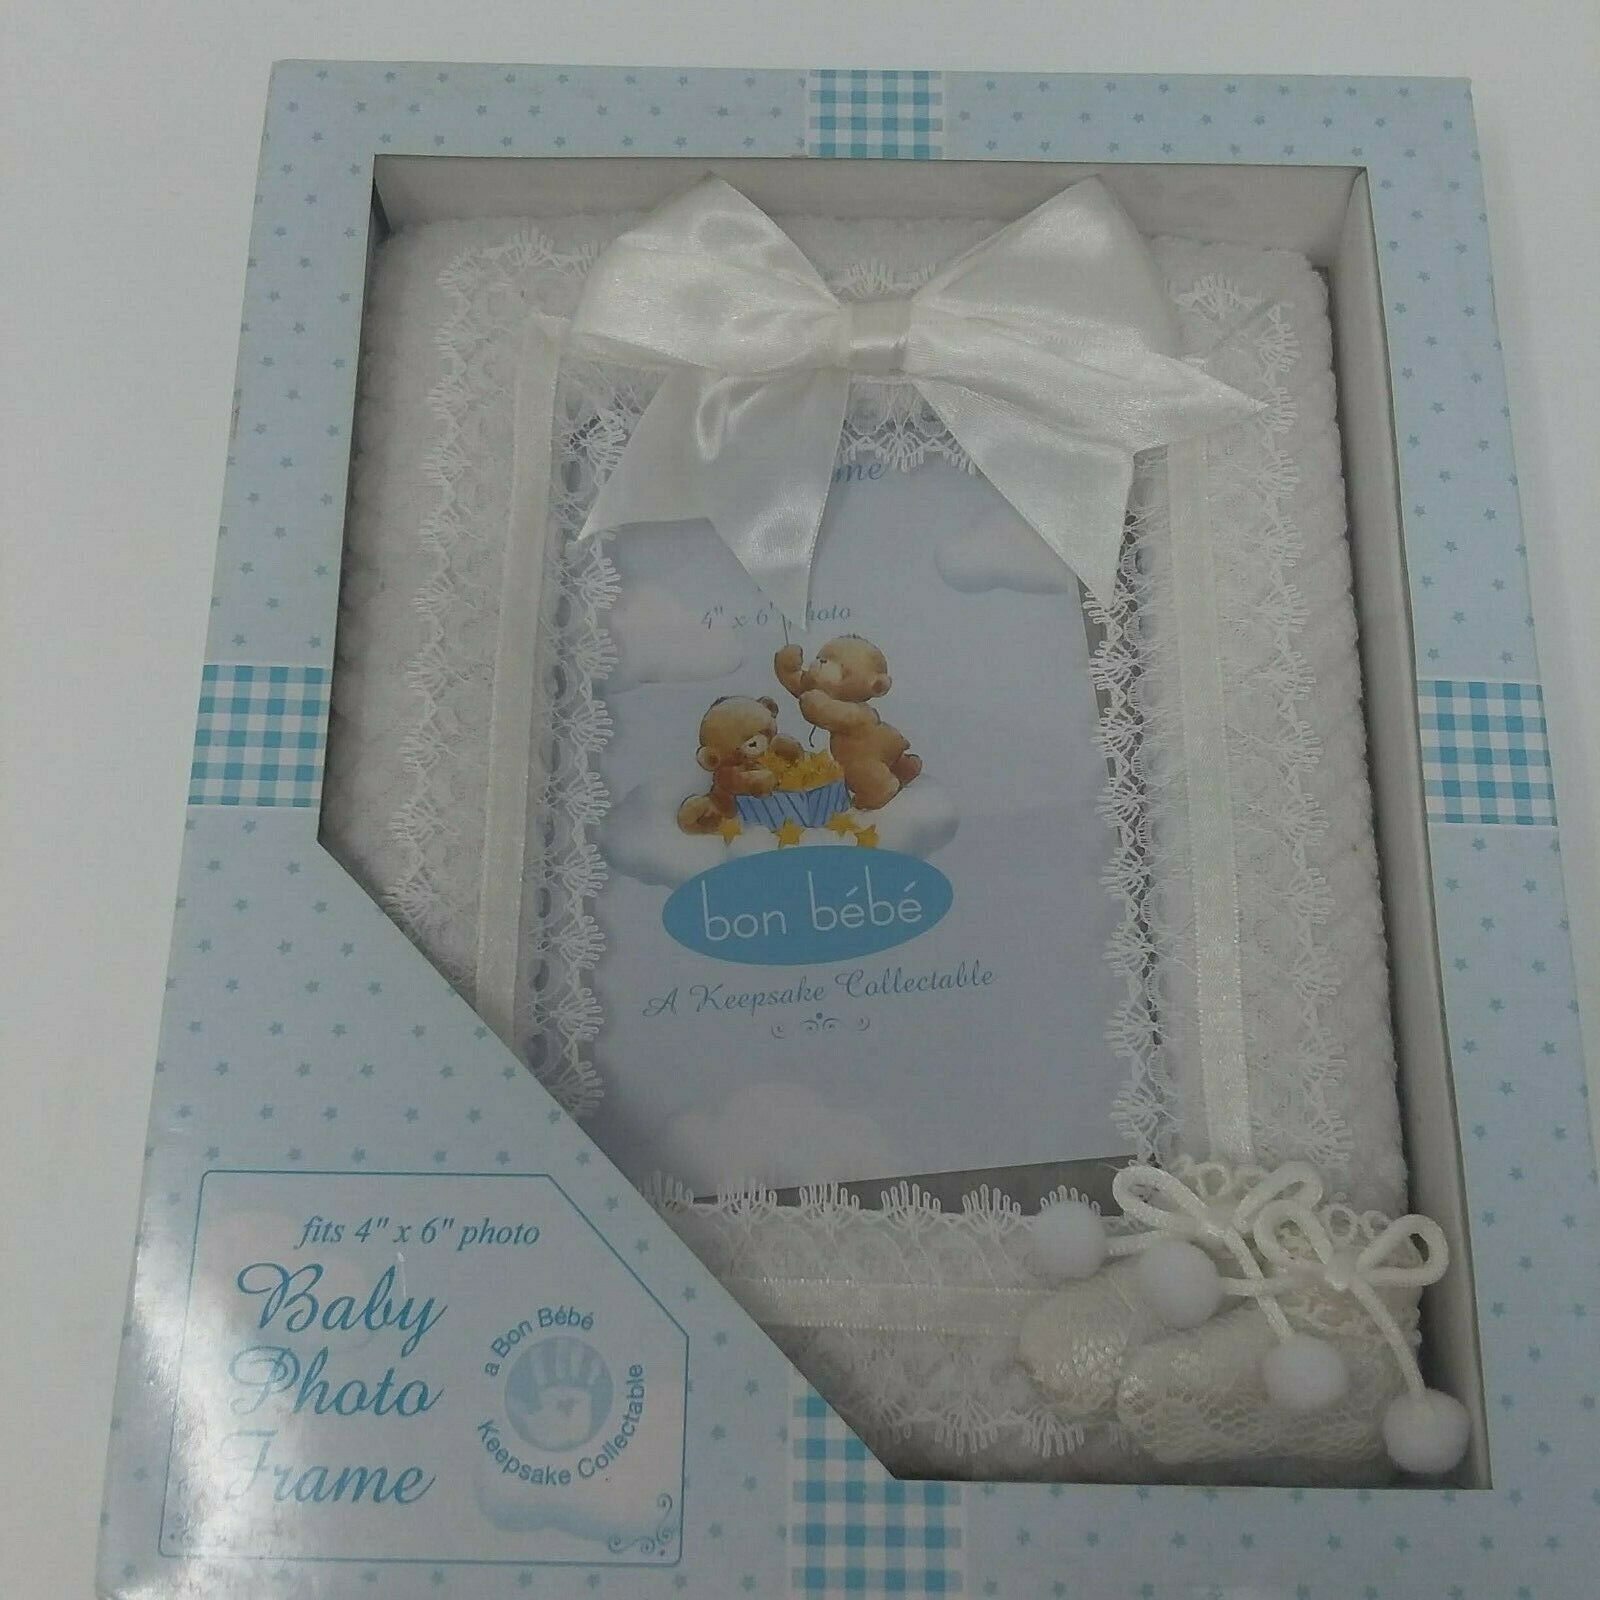 Primary image for Bon Bebe  Keepsake Collectible 4 x 6 Photo Picture Frame NIB Boy or Girl Infant